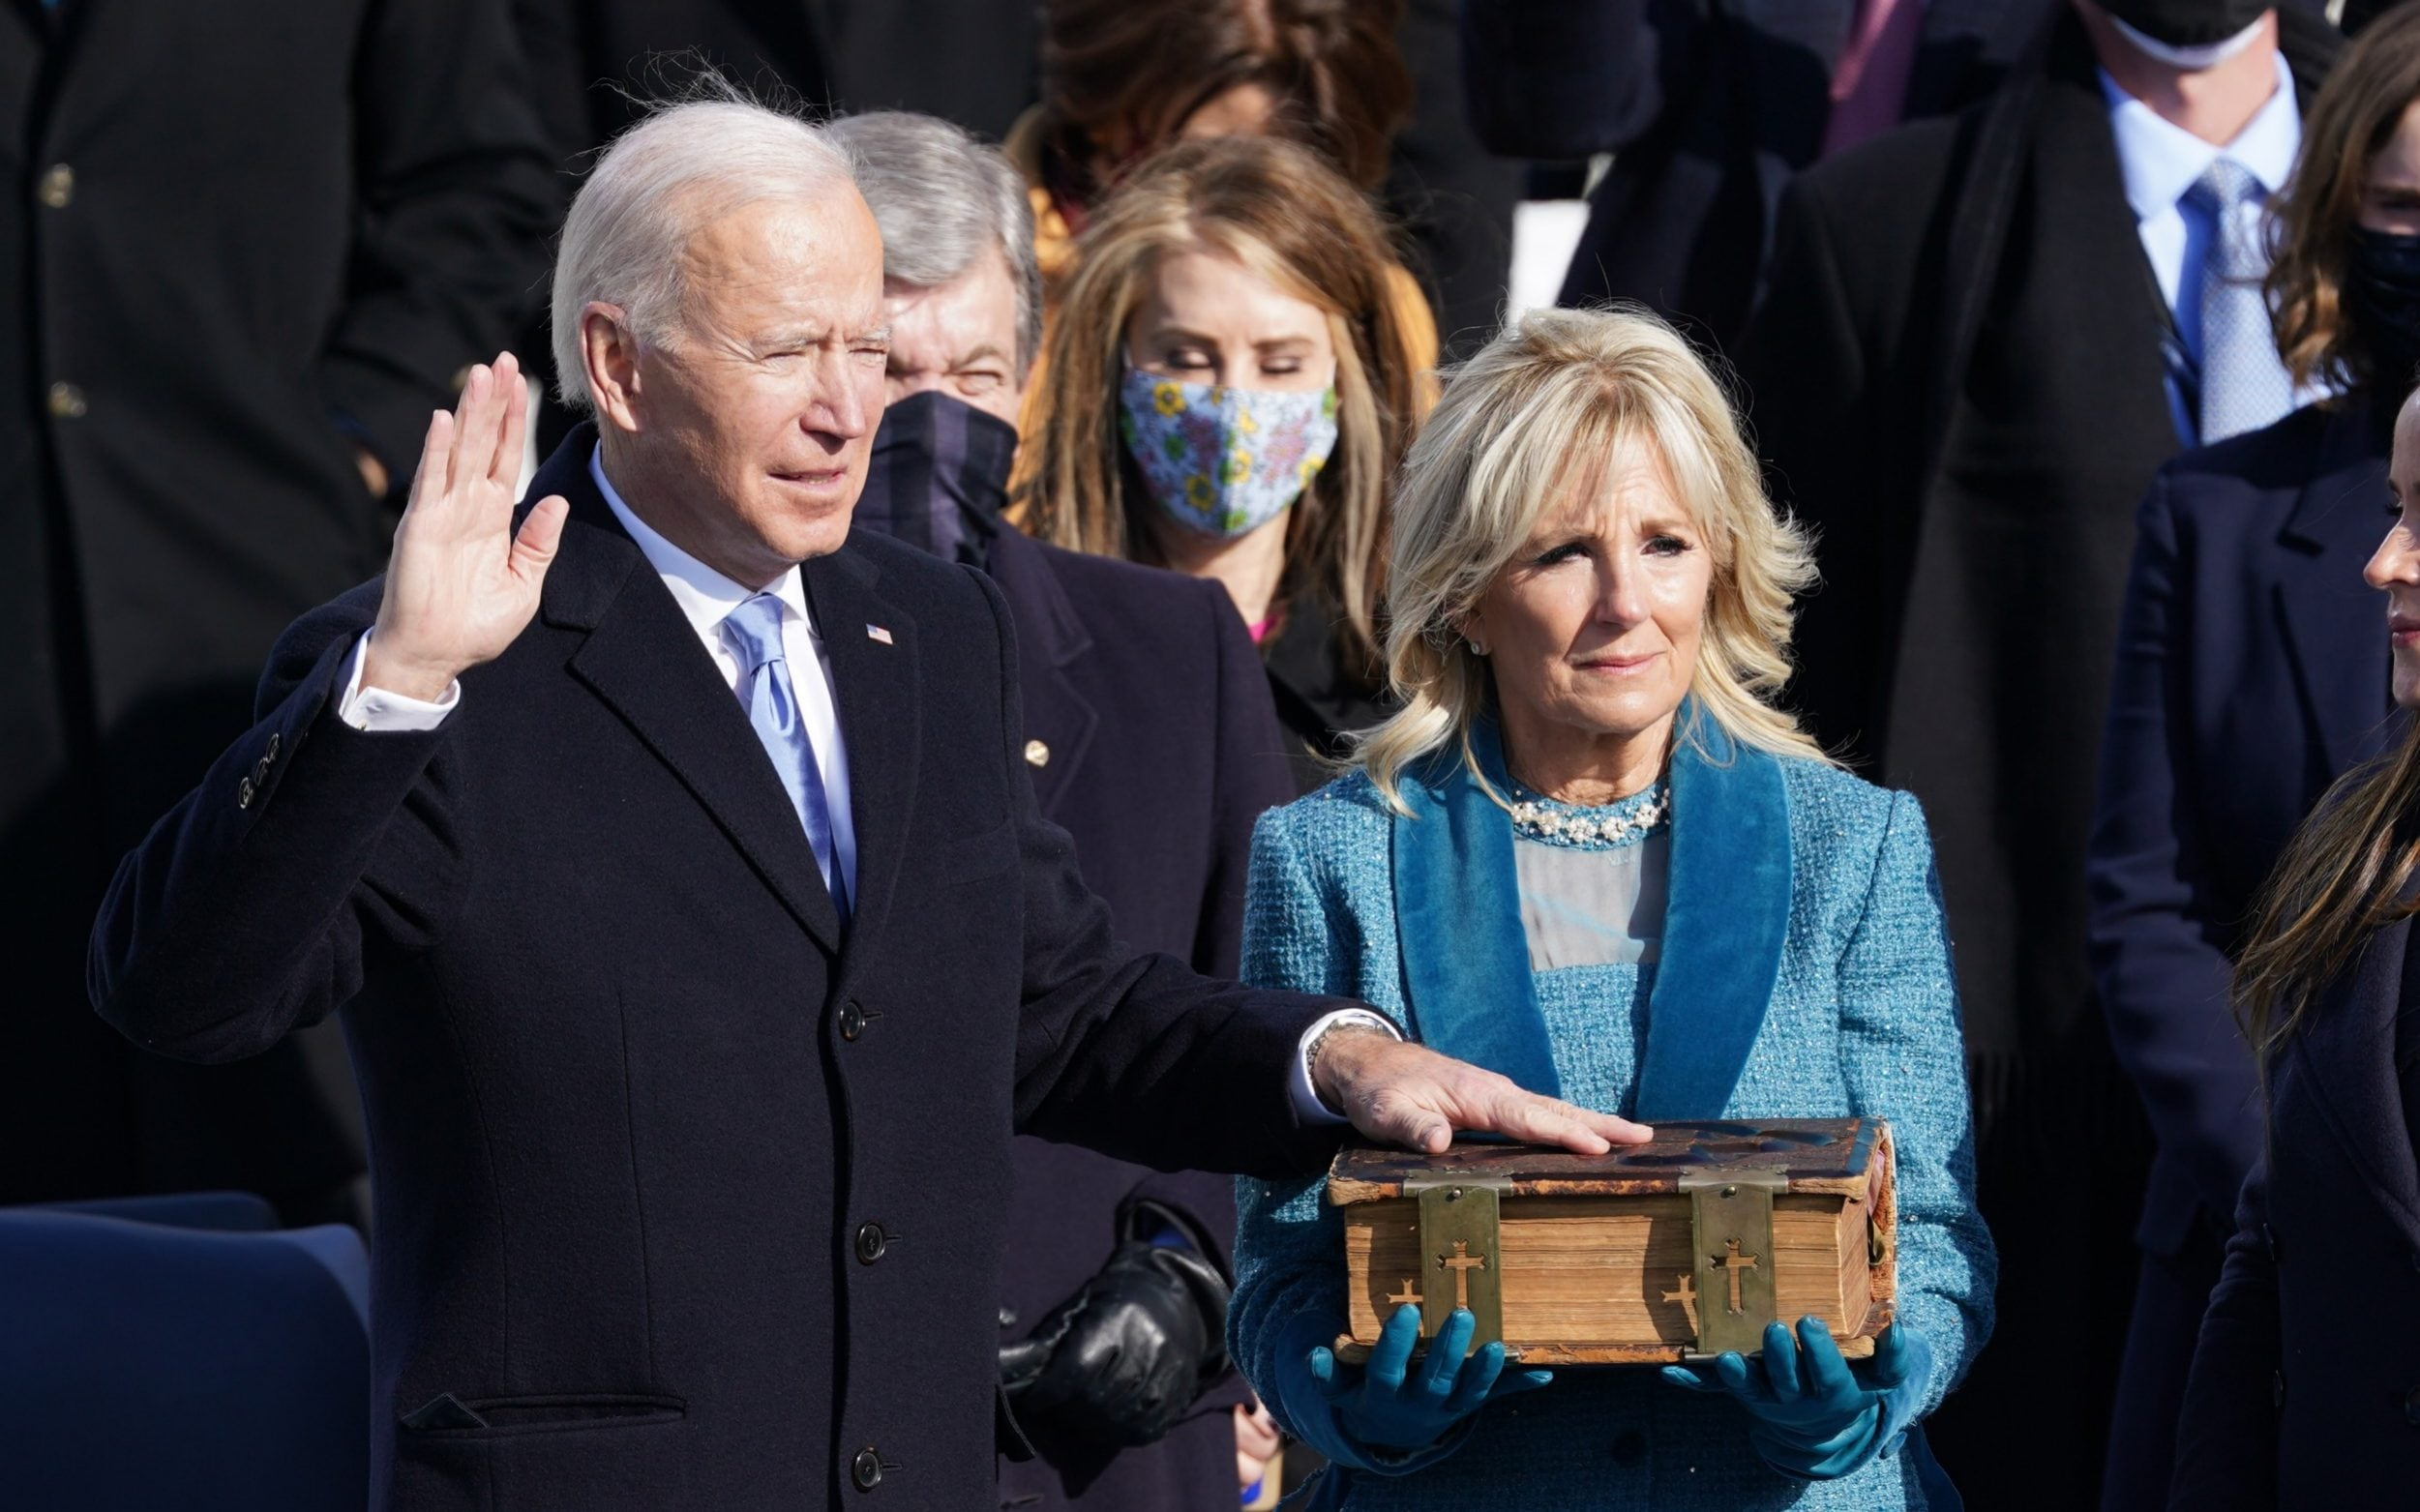 Joe Biden is sworn in as the 46th President of the United States as his wife Jill Biden holds a bible on the West Front of the US Capitol in Washington., January 20, 2021. Photo: Reuters/Kevin Lamarque